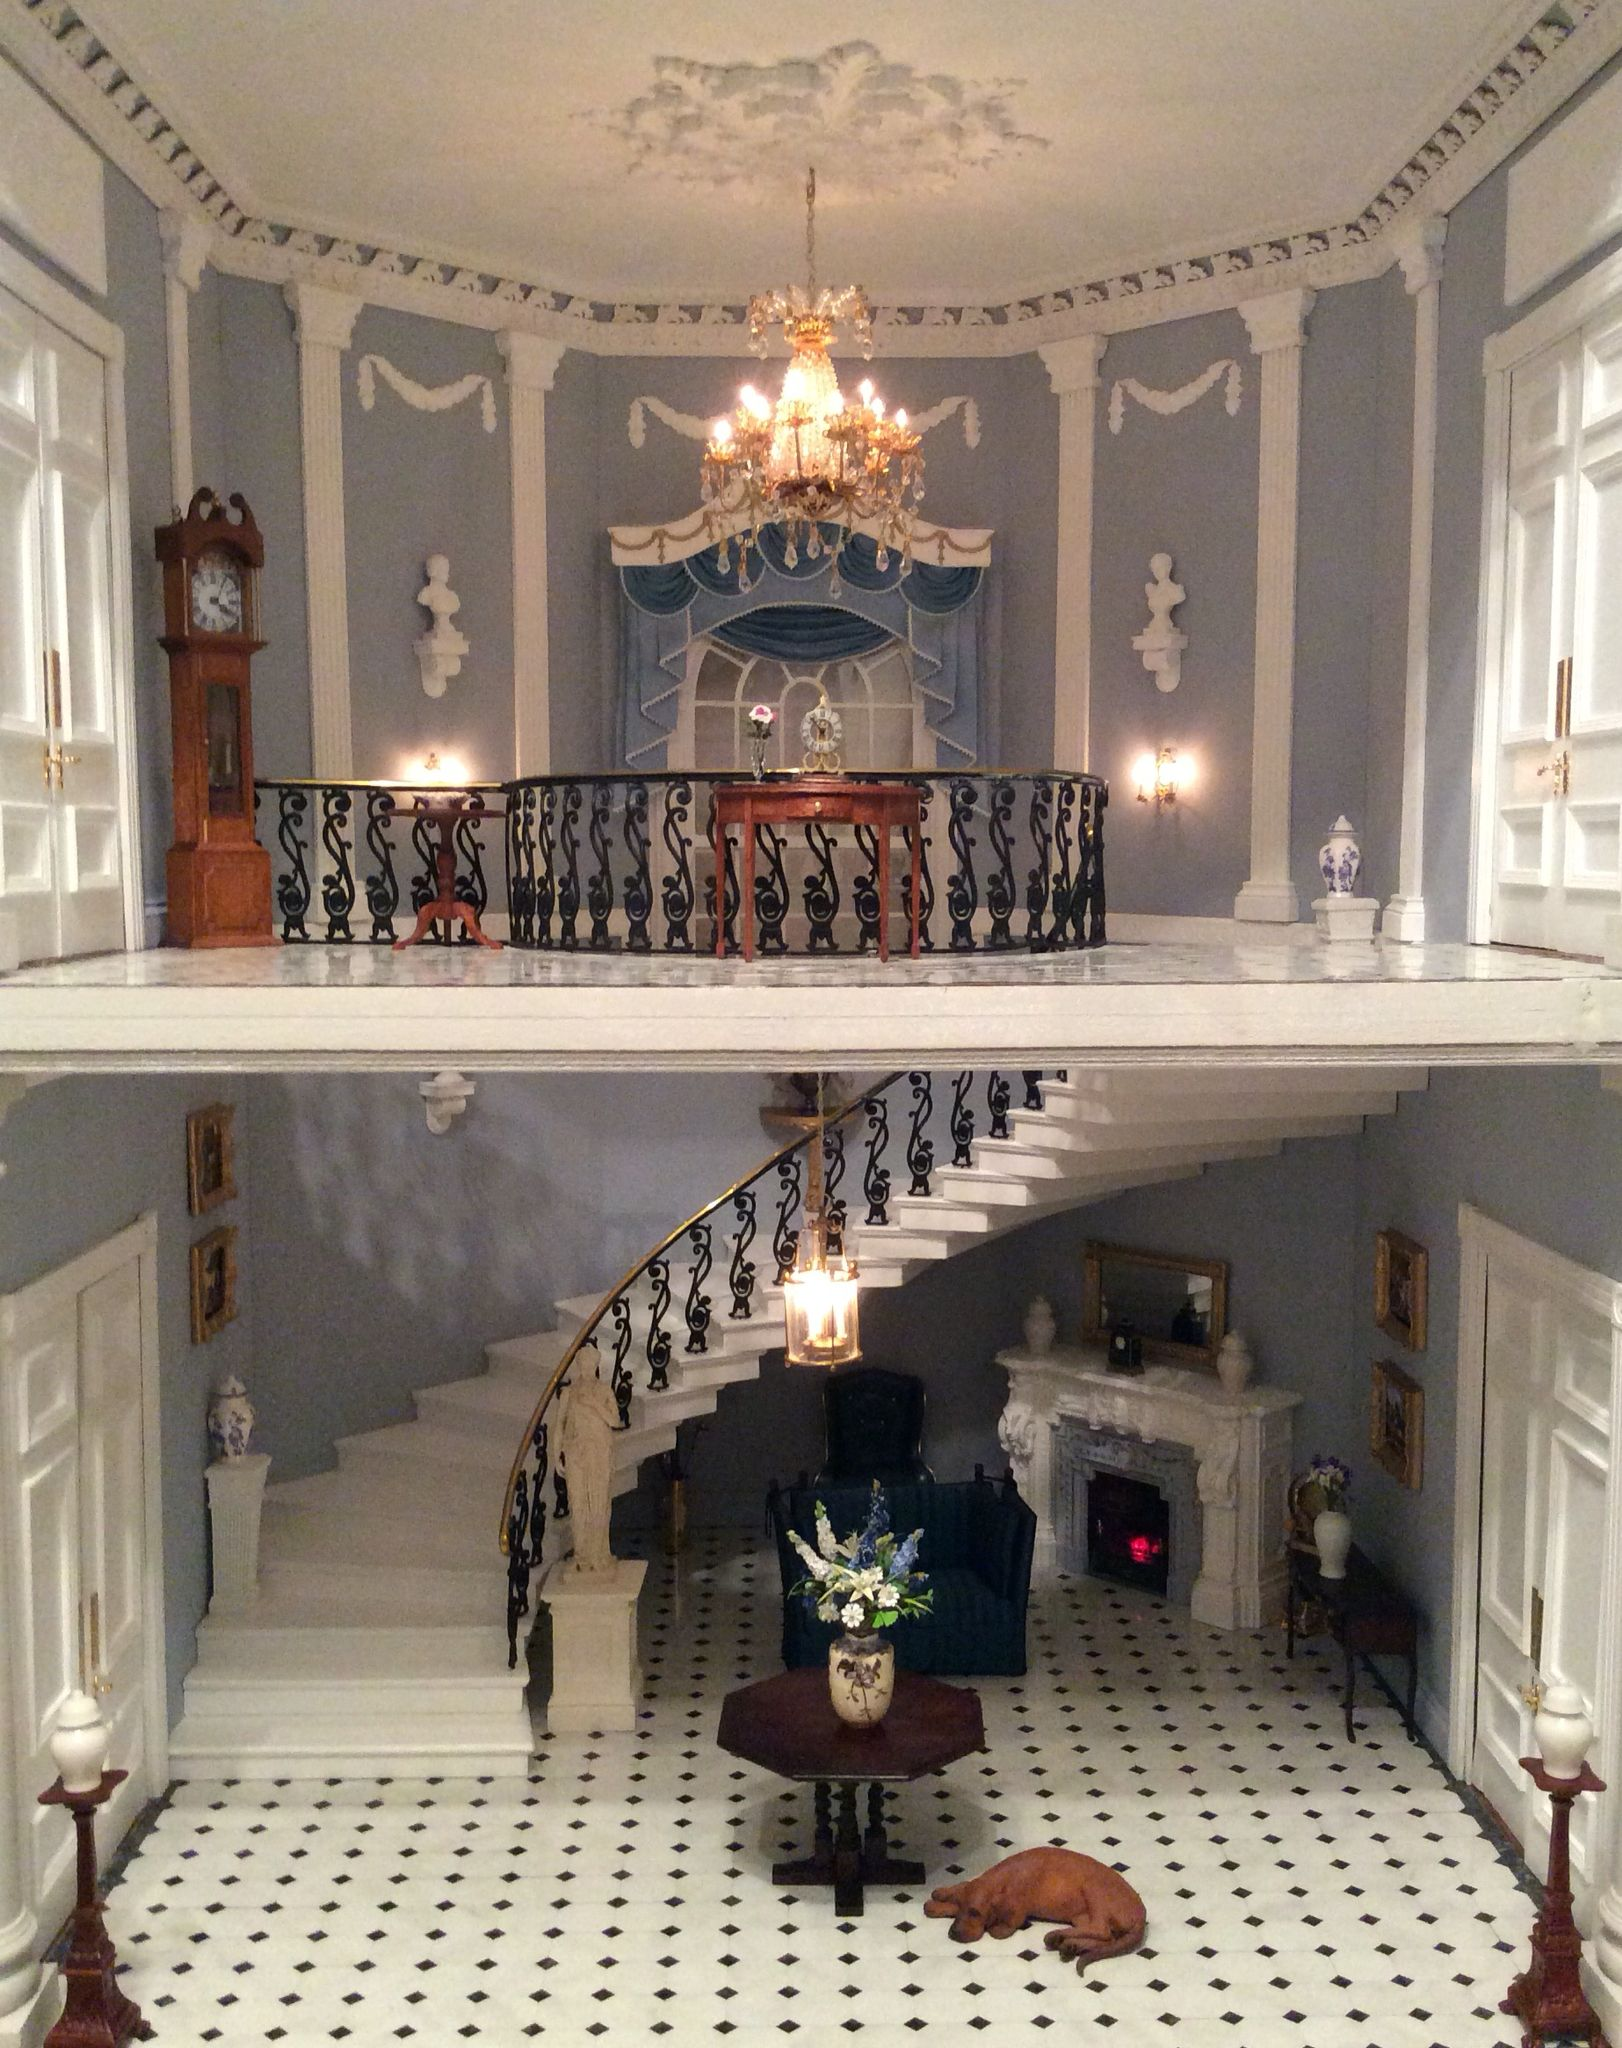 Designer dioramas miniature rooms - Dolls House Grand Designs Co Uk One Of Our Designs